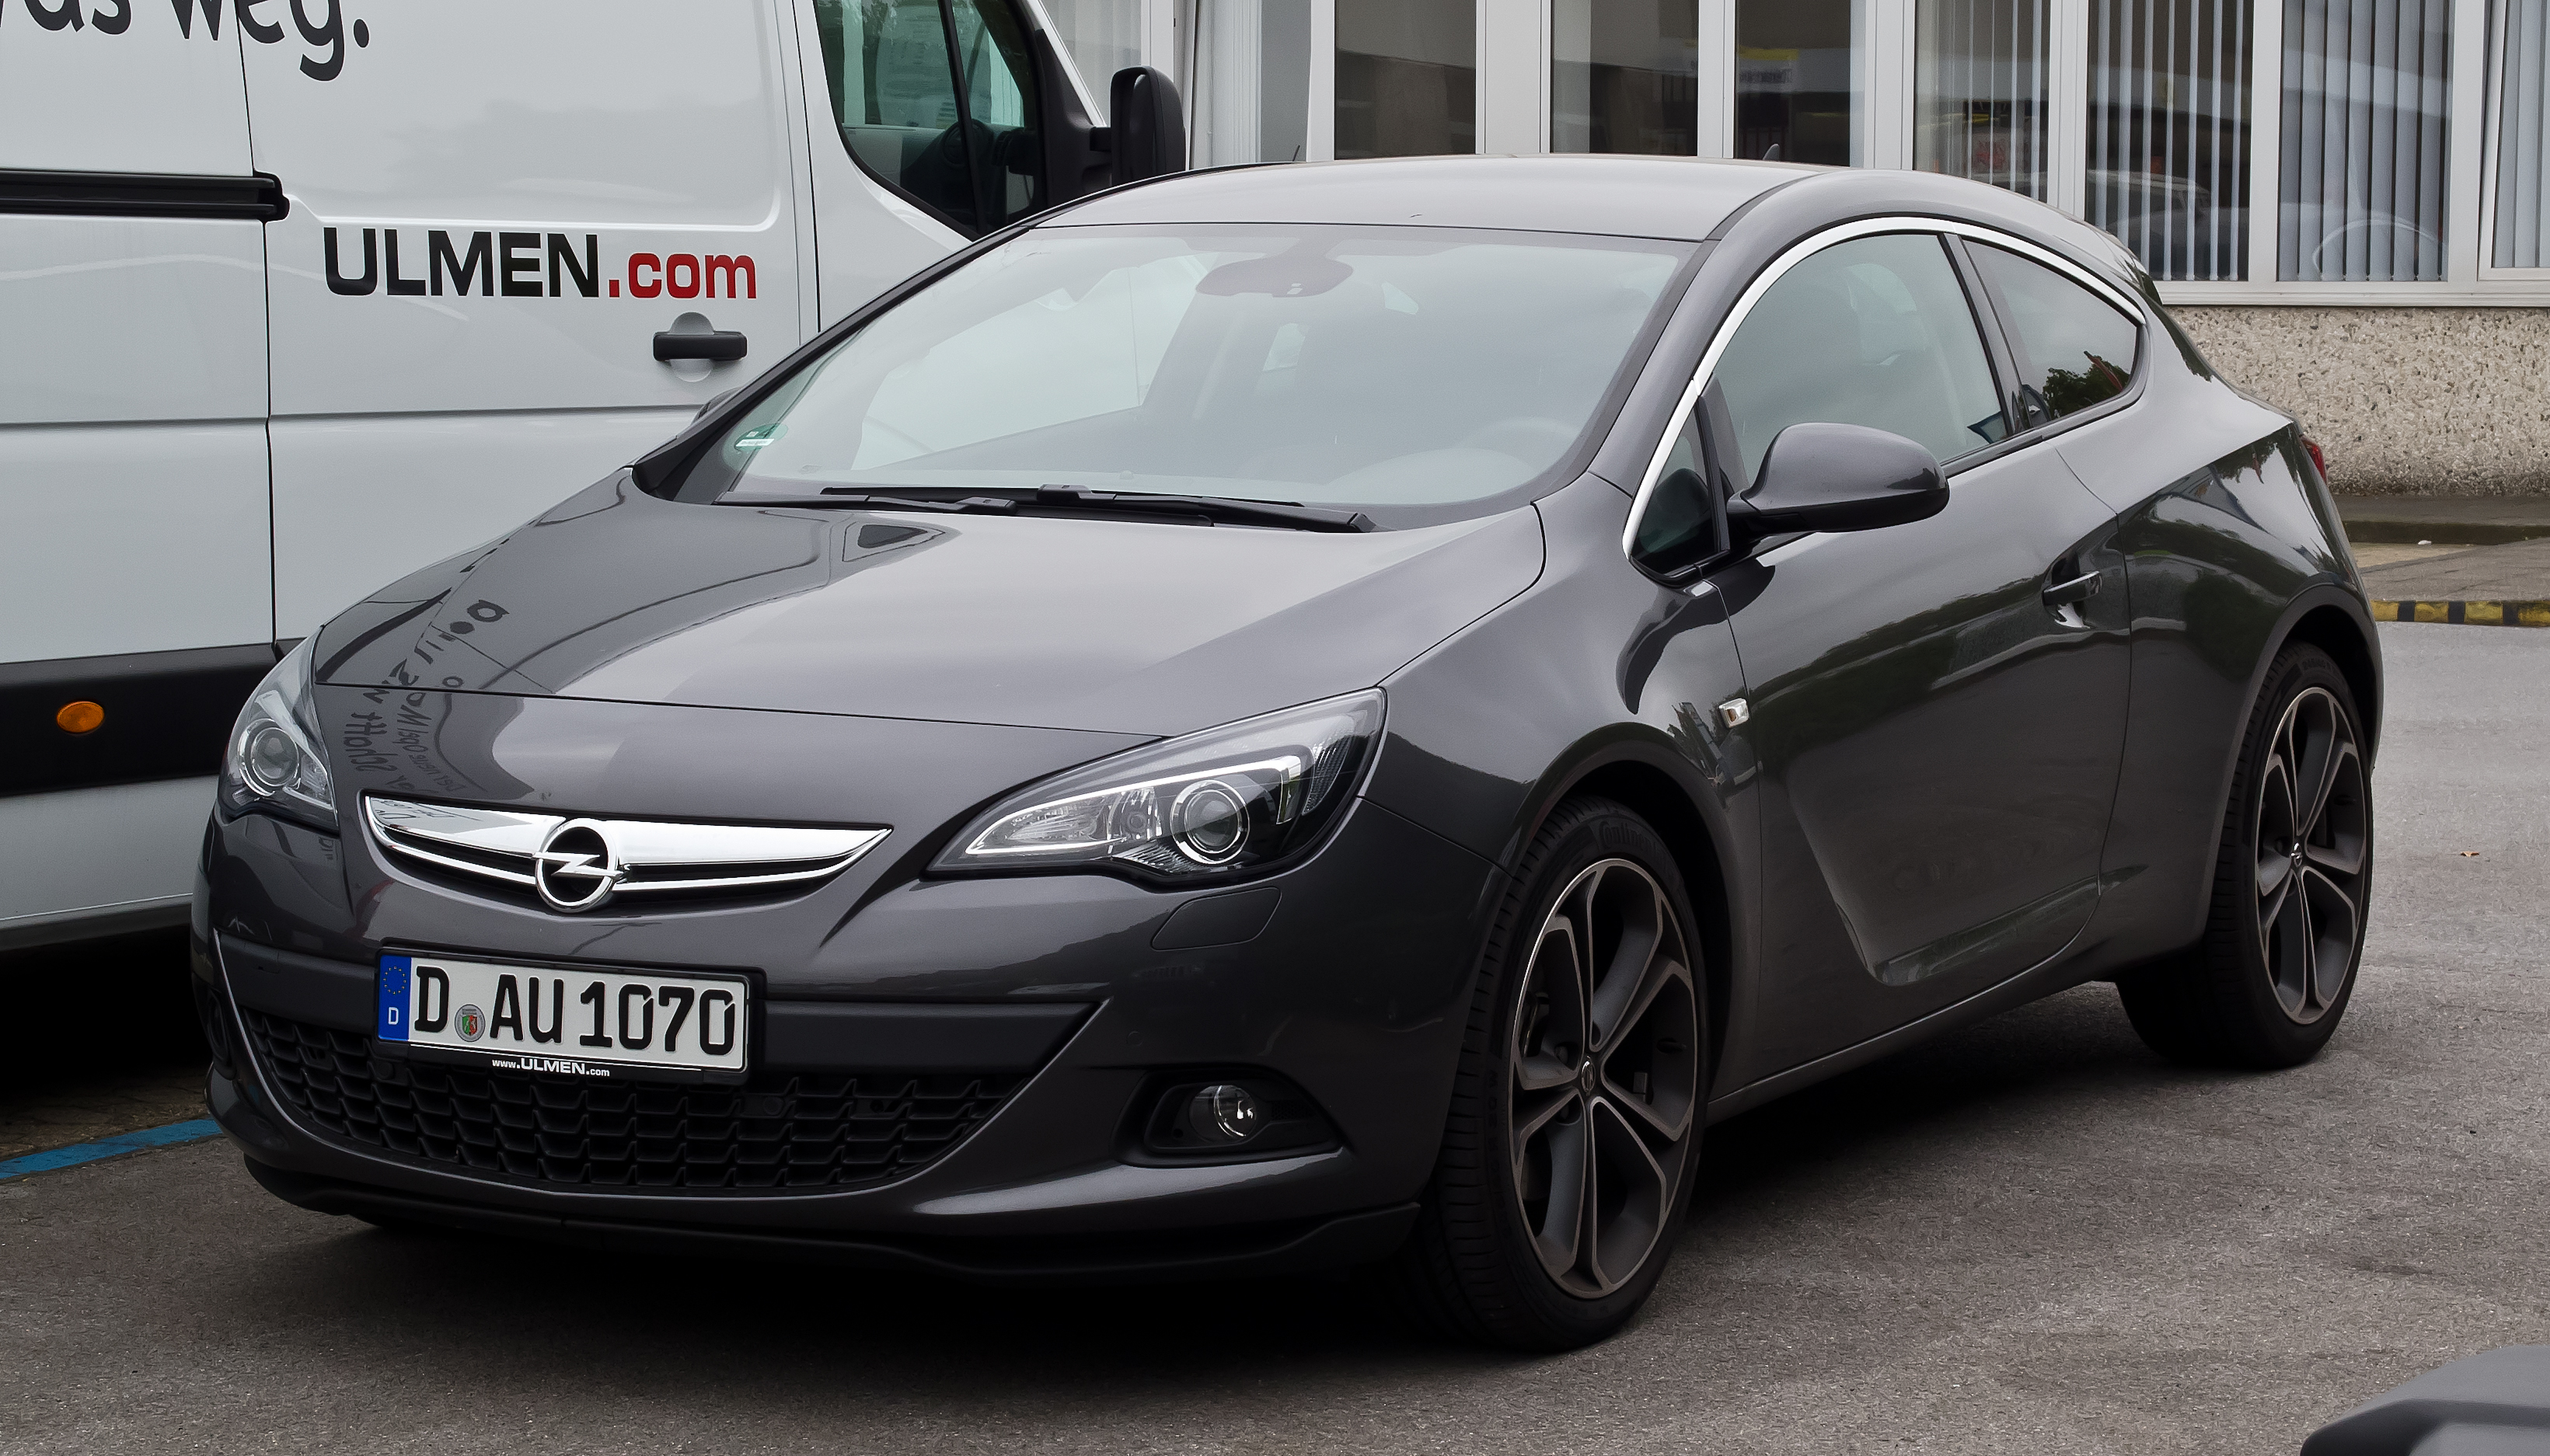 2013 opel astra j gtc pictures information and specs auto. Black Bedroom Furniture Sets. Home Design Ideas